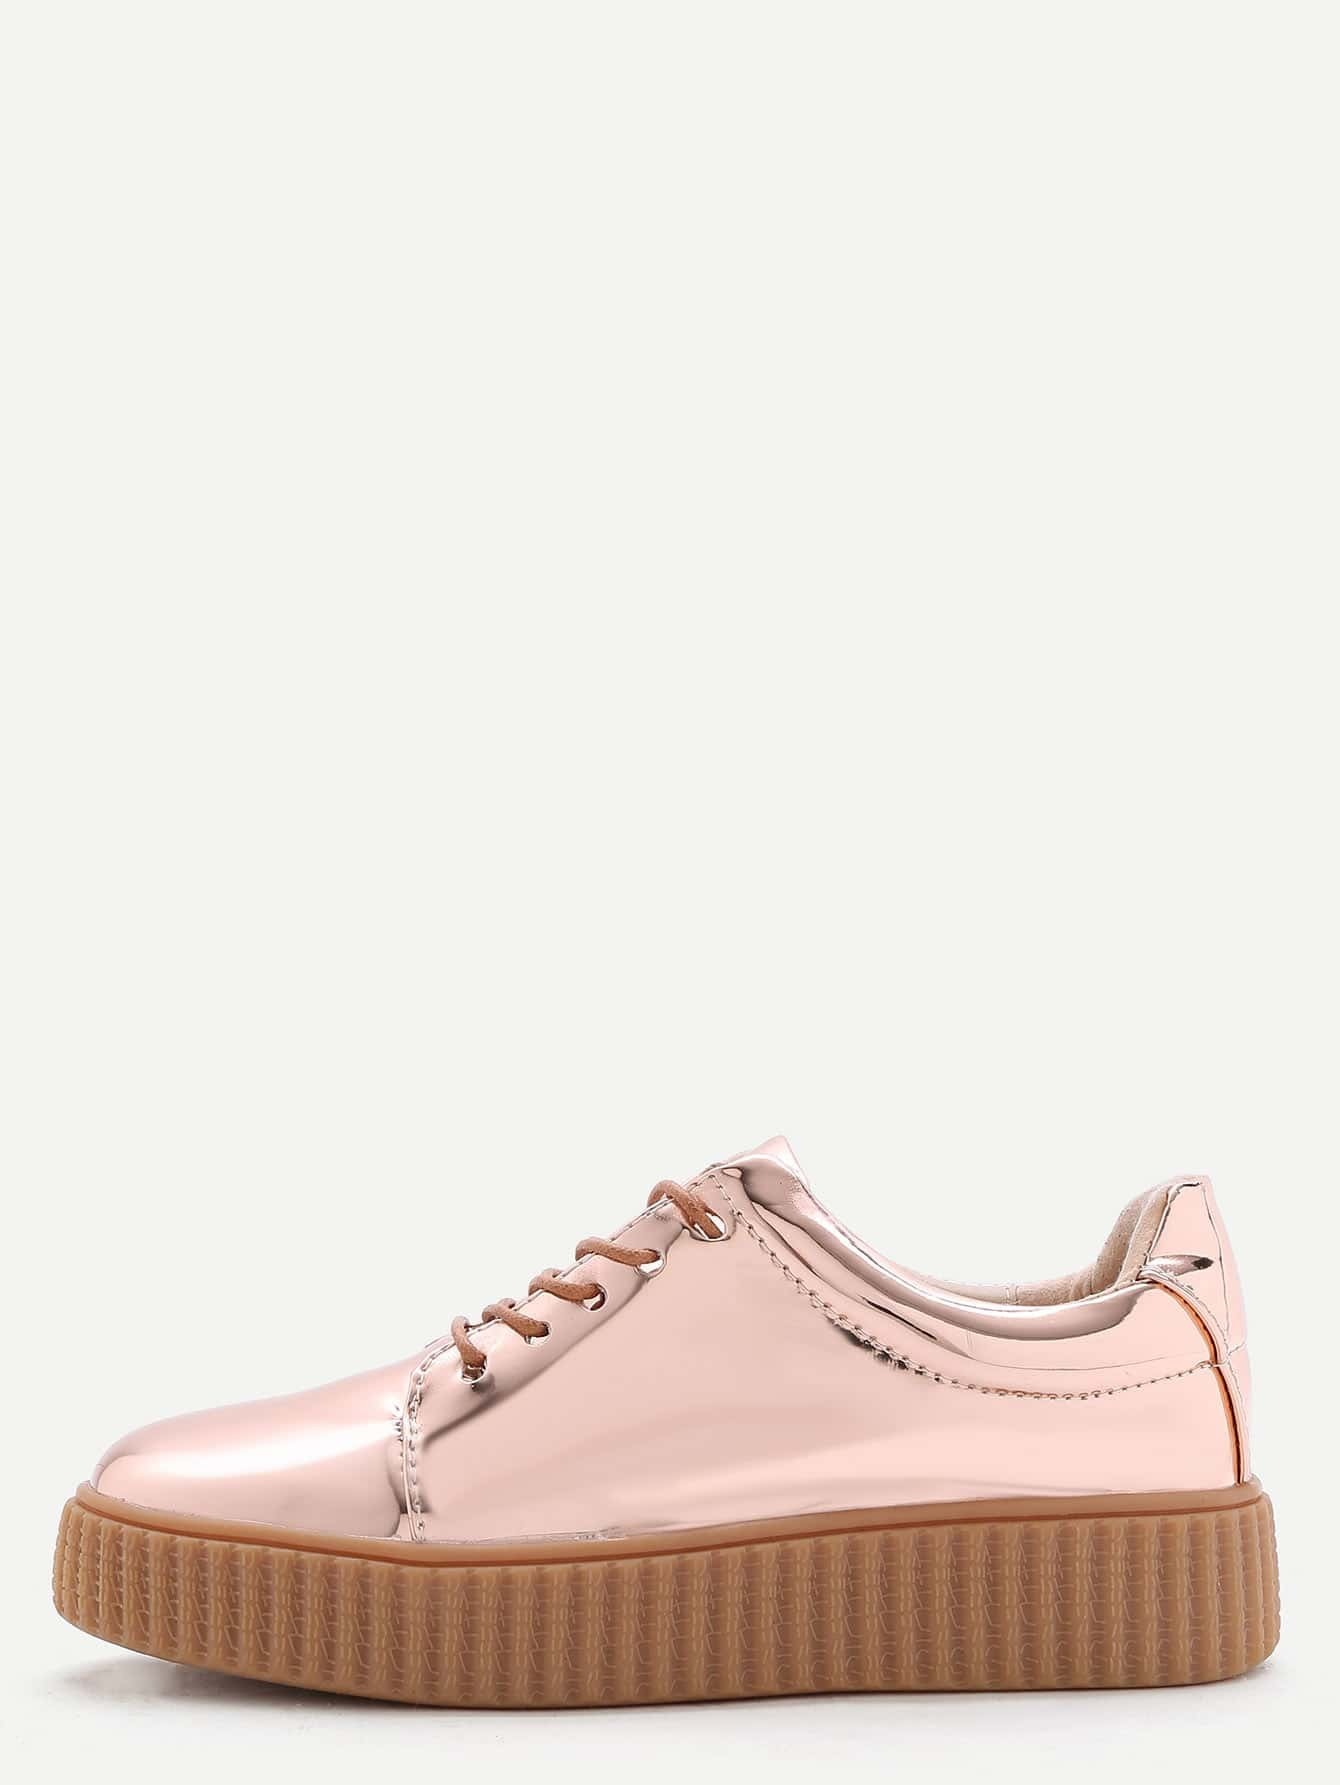 gold patent leather rubber sole sneakersfor romwe